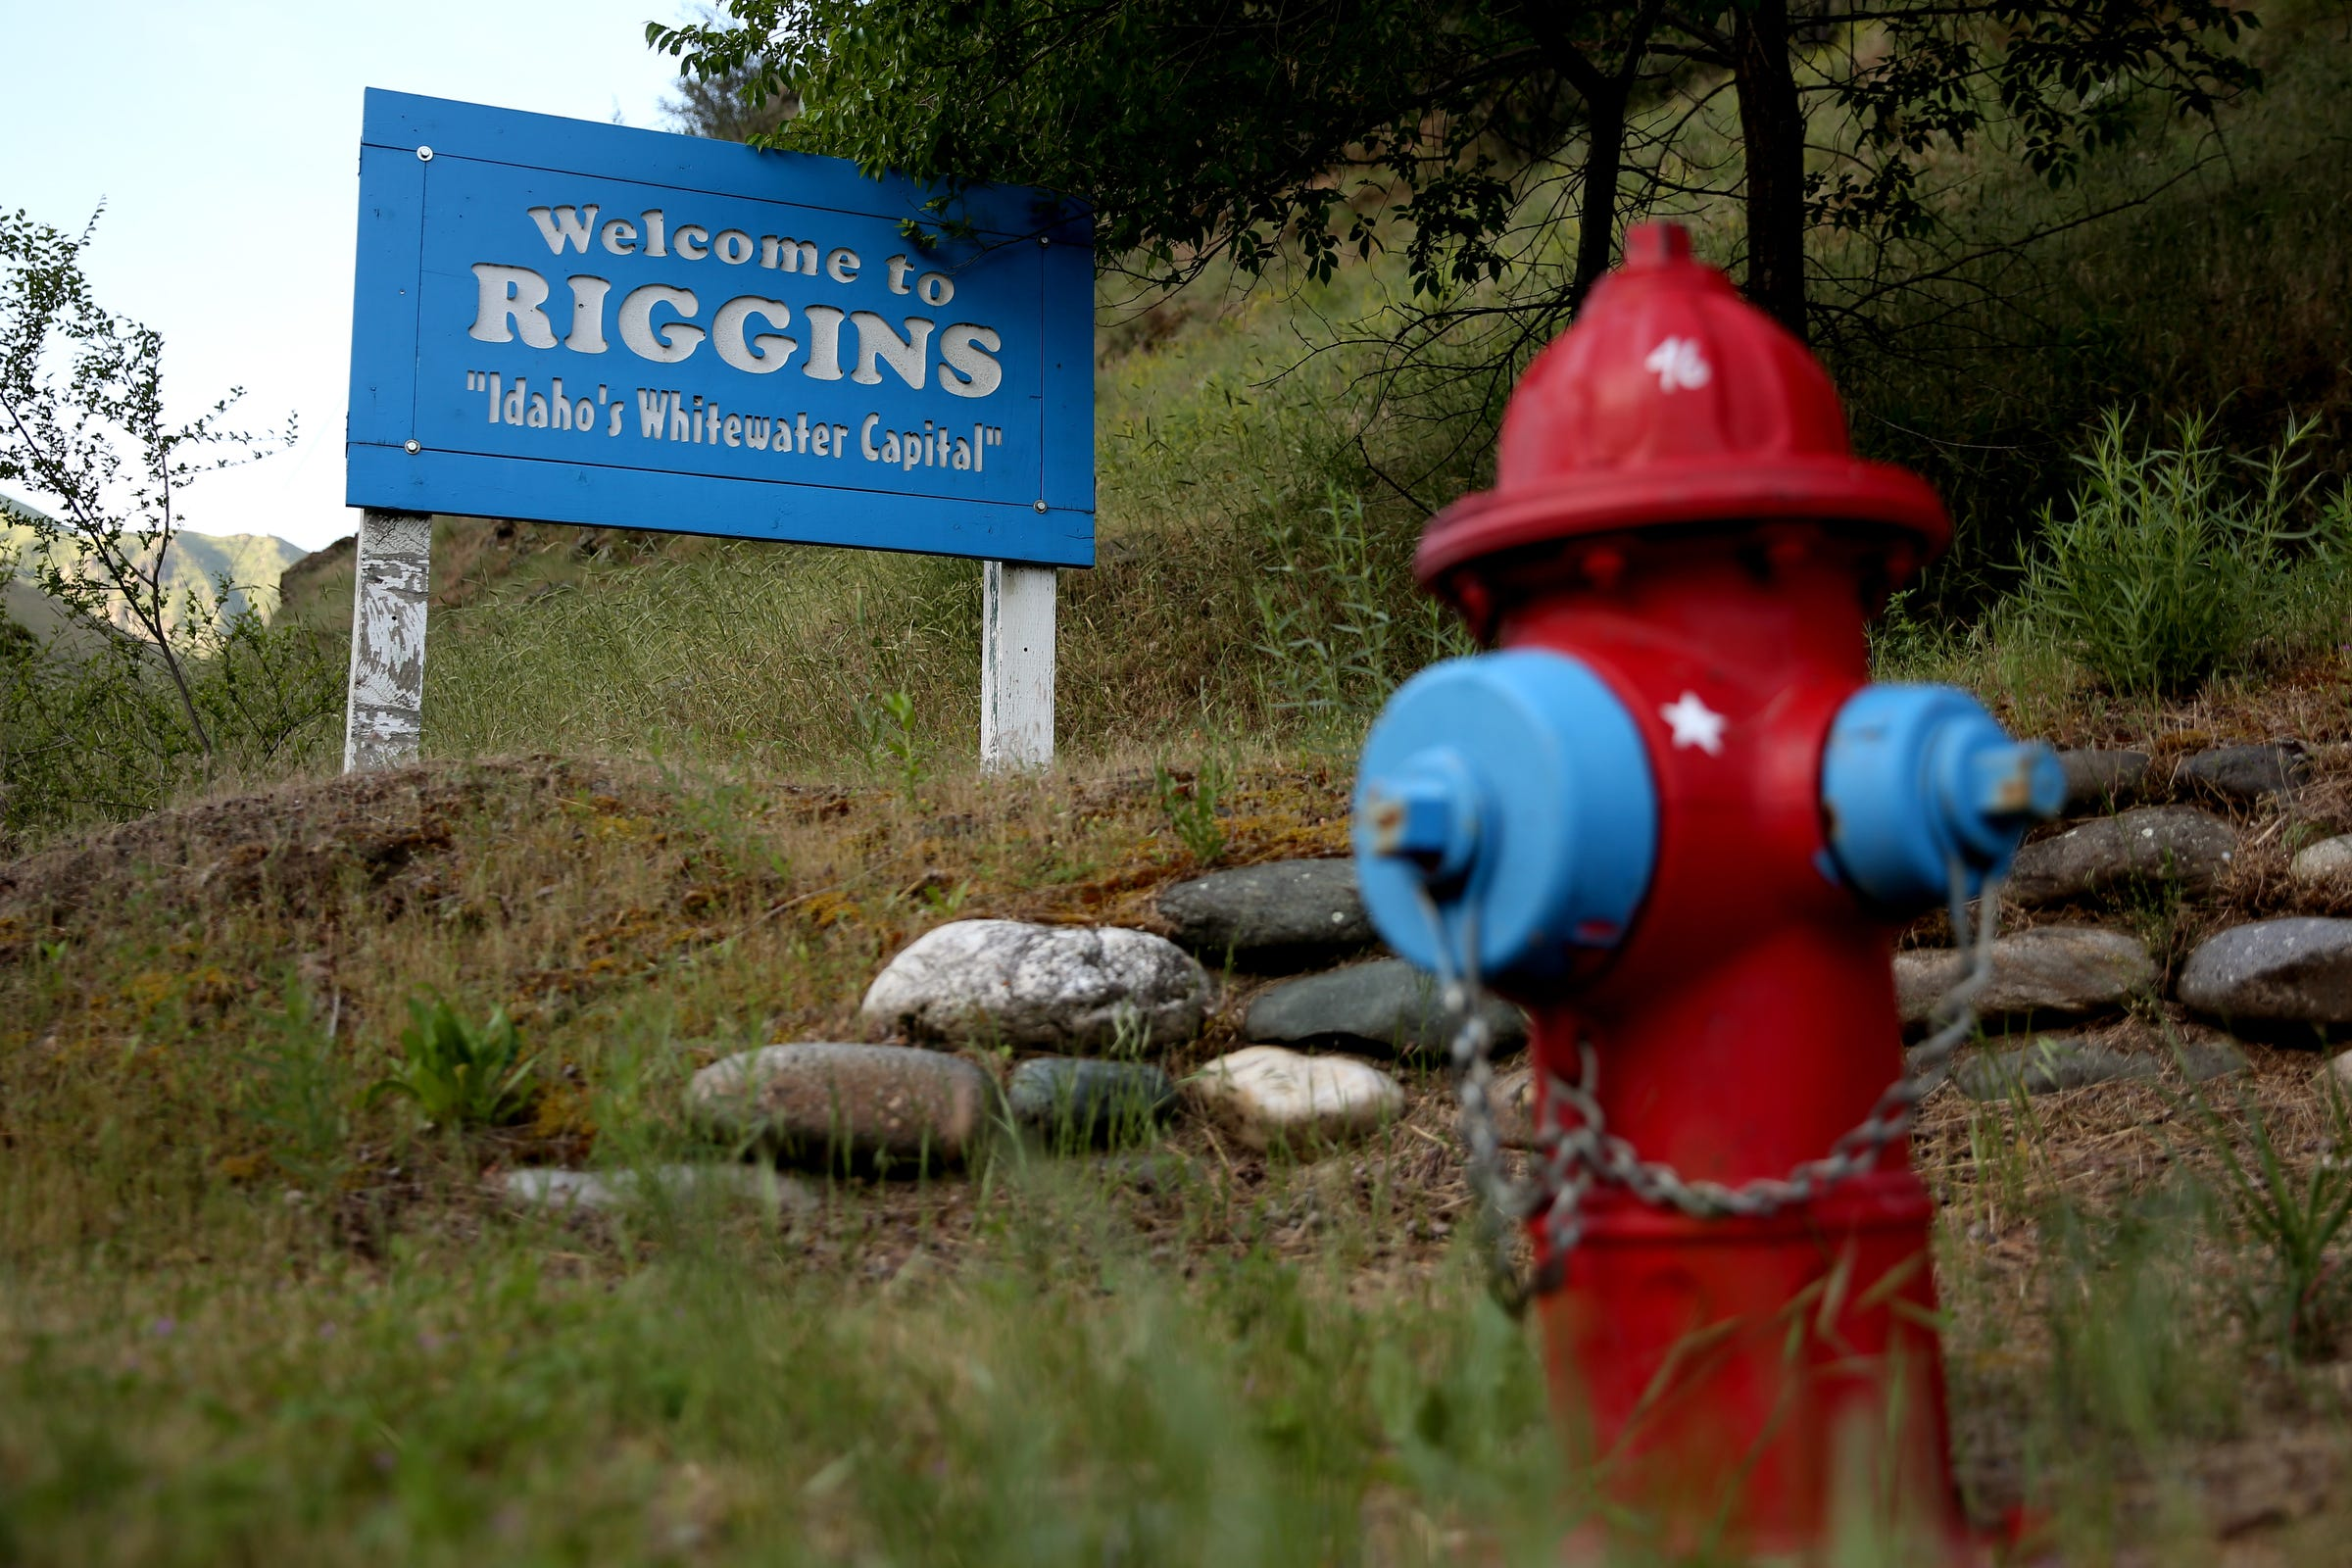 """A fire hydrant in front of the """"Welcome"""" sign on the north end of Riggins, Idaho on June 13, 2019."""